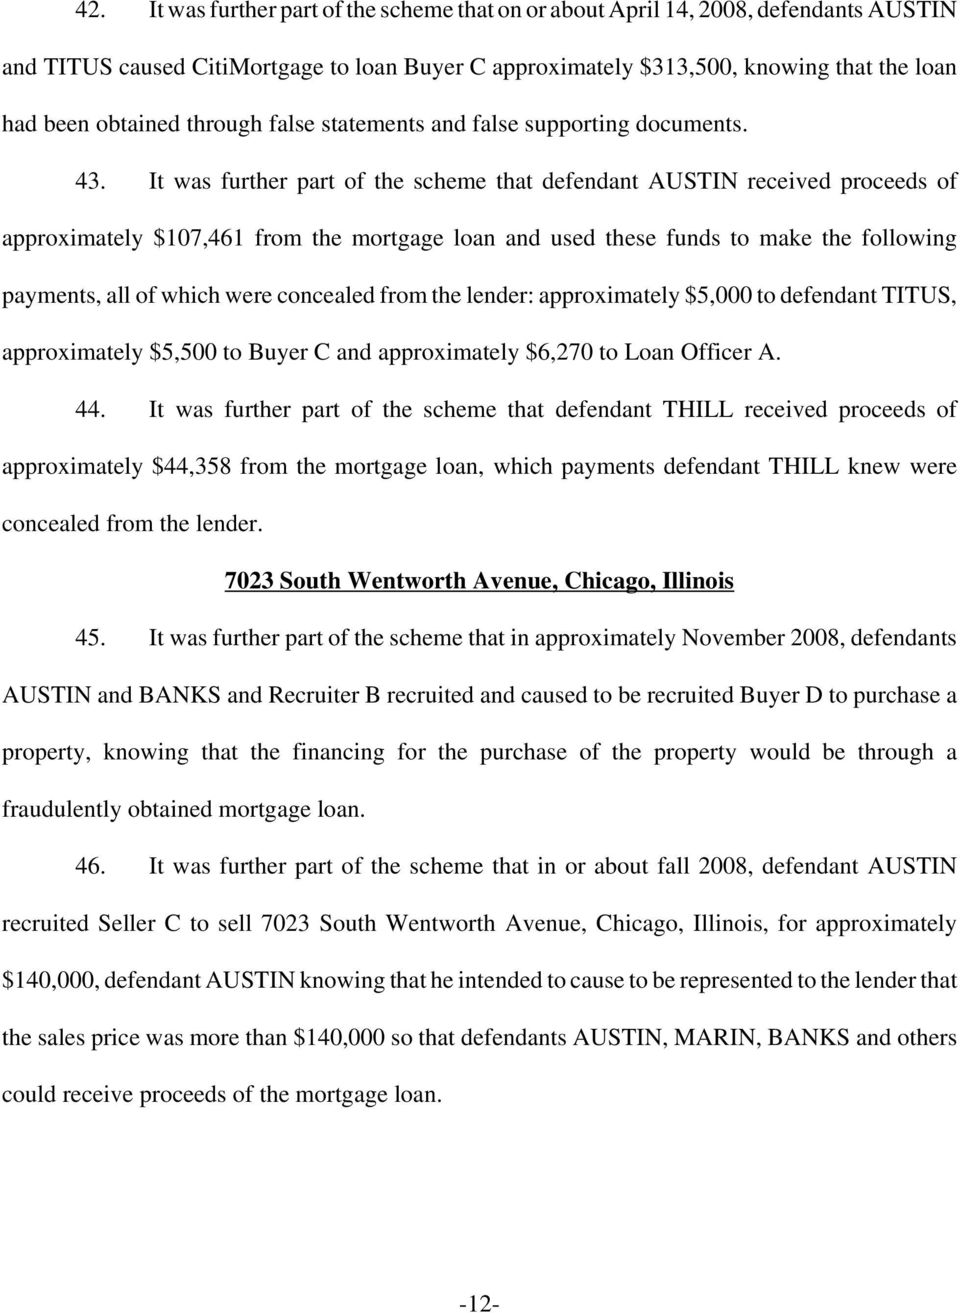 It was further part of the scheme that defendant AUSTIN received proceeds of approximately $107,461 from the mortgage loan and used these funds to make the following payments, all of which were